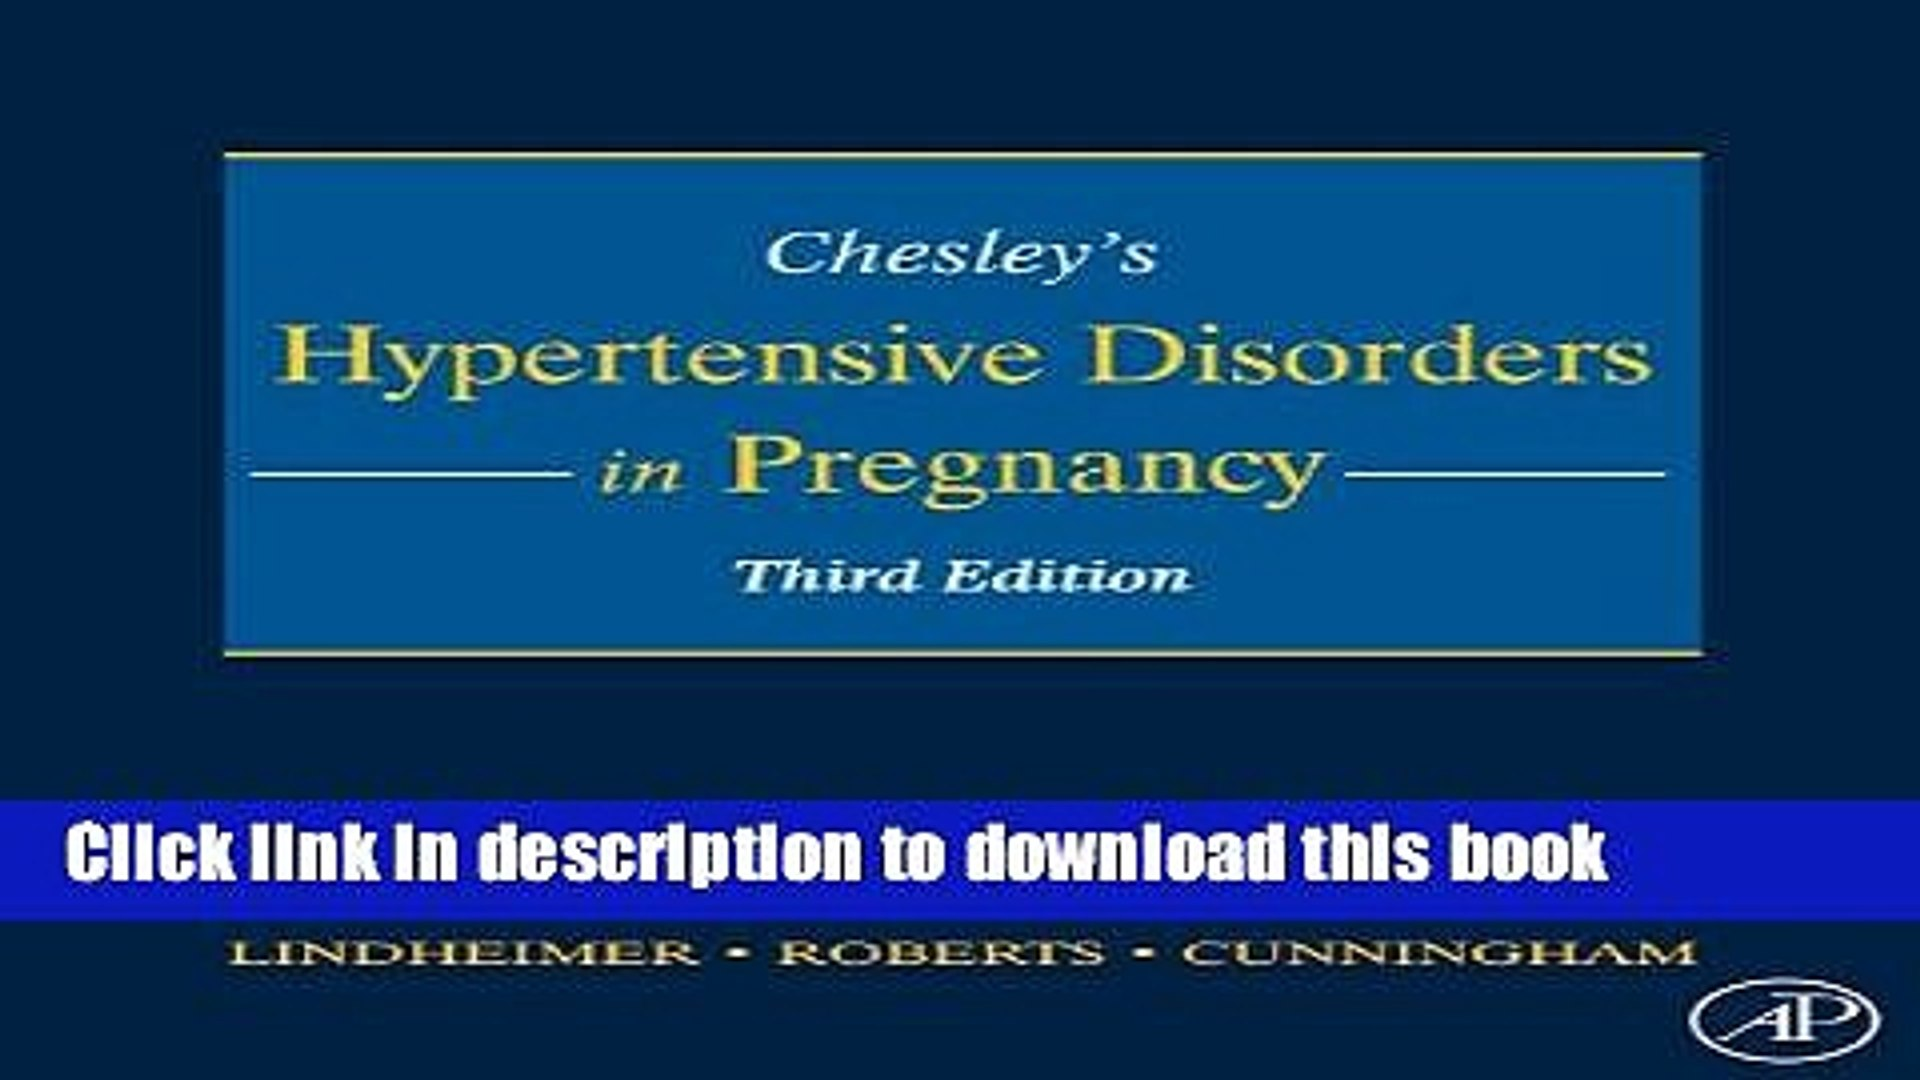 Chesleys Hypertensive Disorders in Pregnancy, 3rd Edition